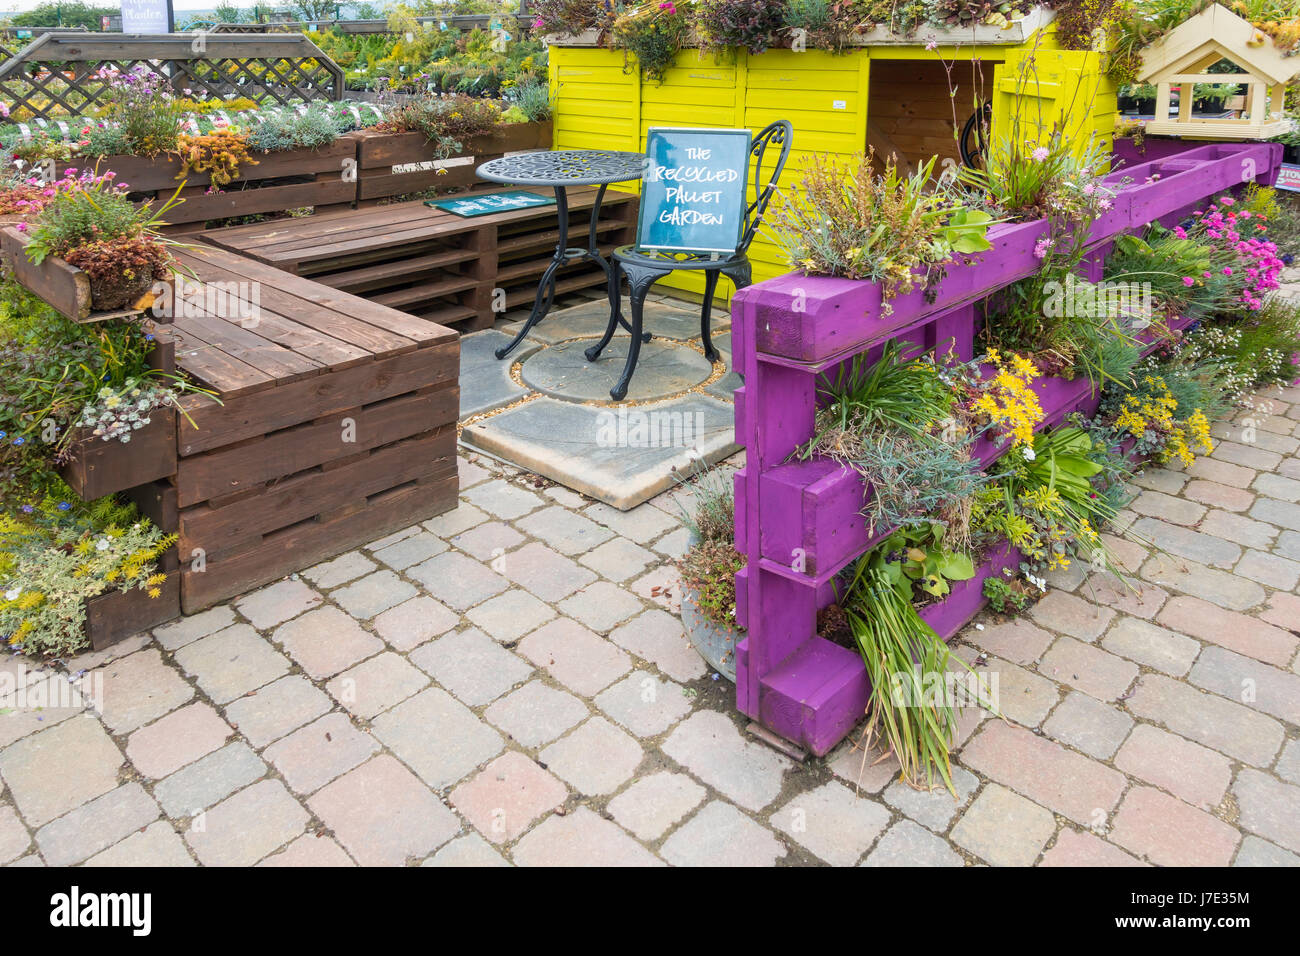 A recycled pallet display in a garden centre with furniture made